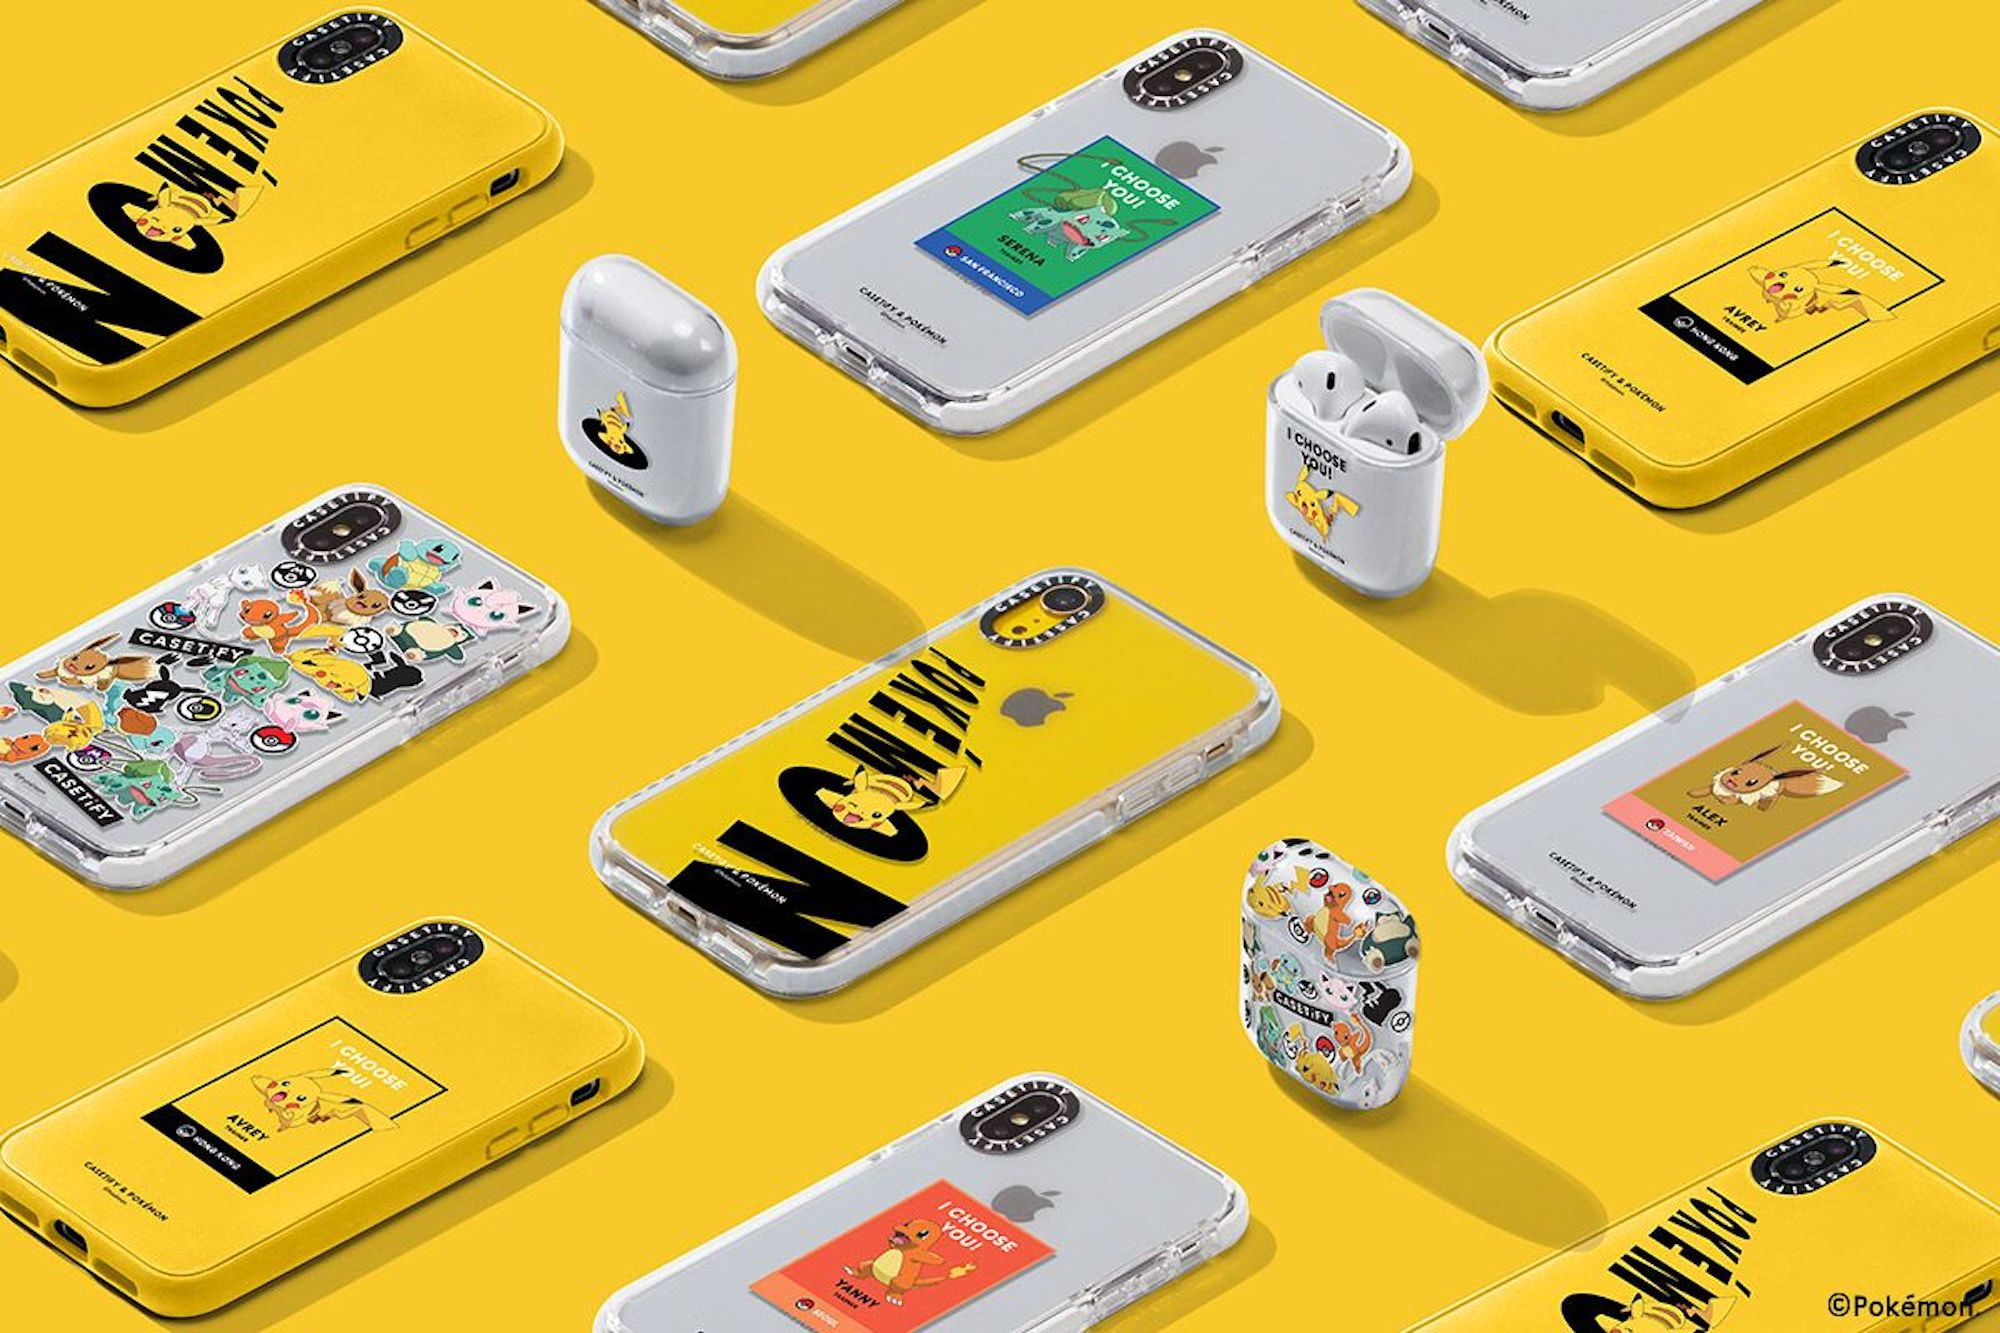 best service 2ae6b 2f0c5 The CASETiFY & Pokémon Day and Night collection | Wonderland